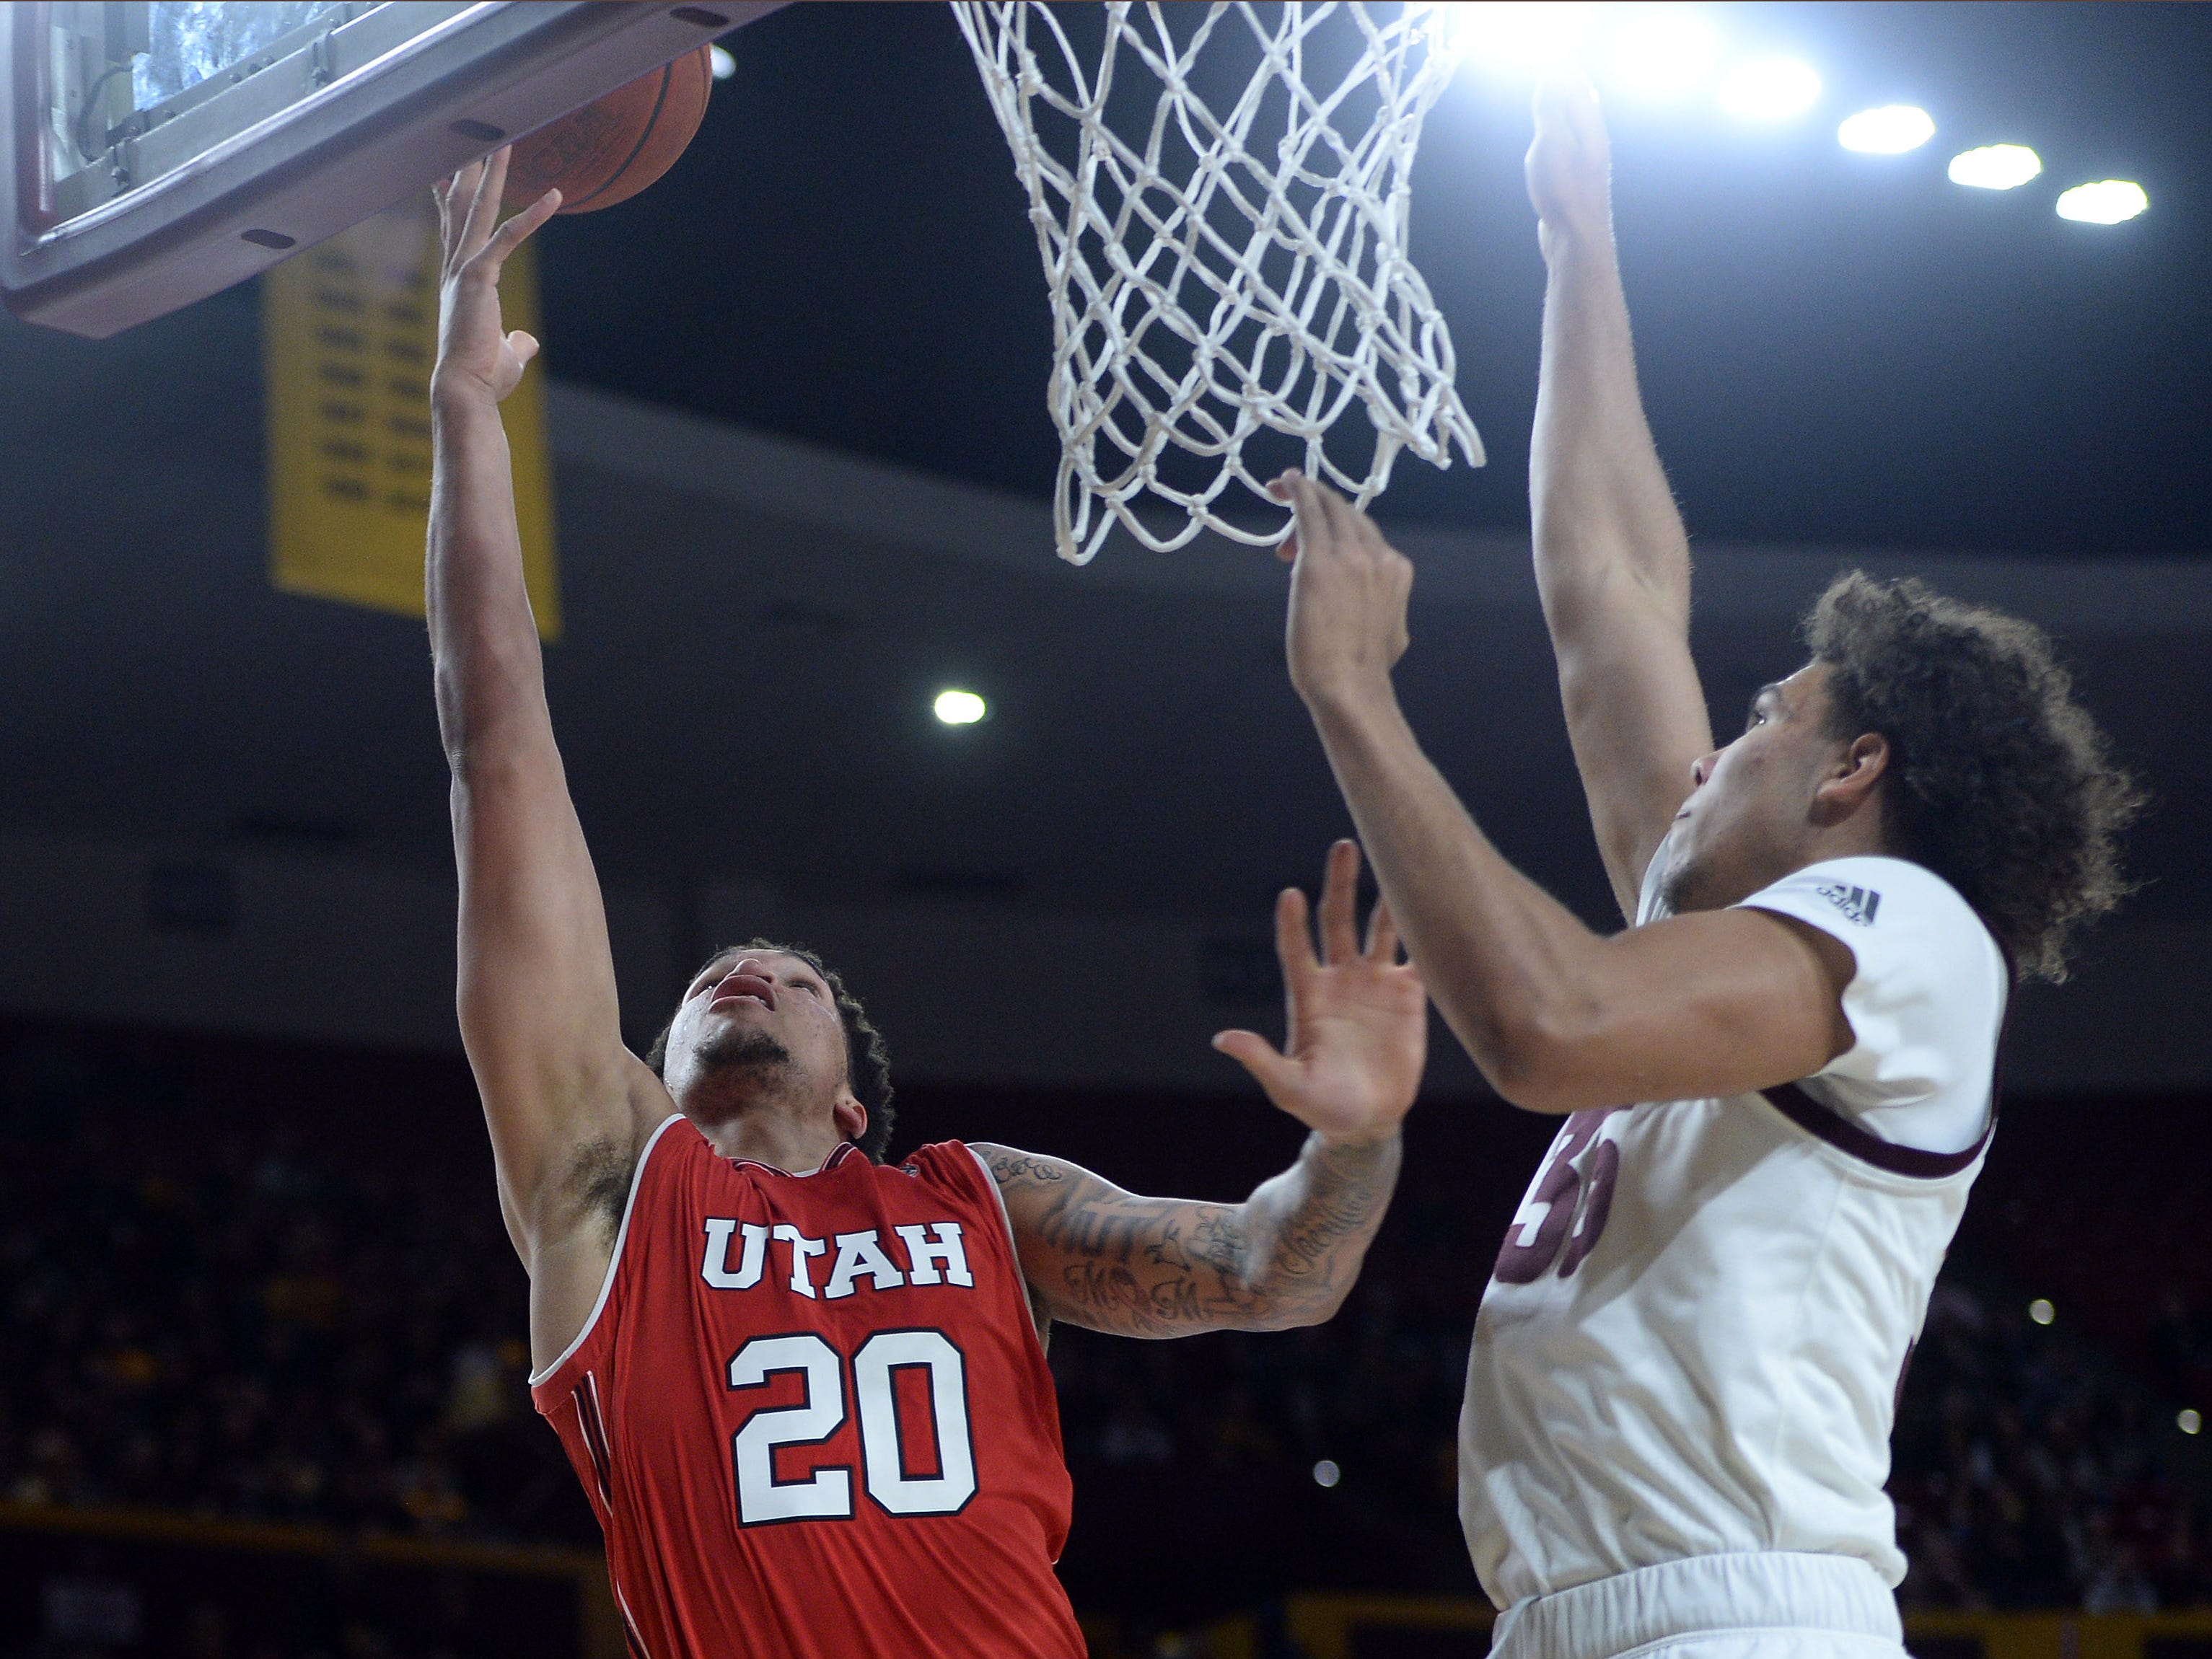 Jan 3, 2019; Tempe, AZ, USA; Utah Utes forward Timmy Allen (20) shoots the ball over Arizona State Sun Devils forward Taeshon Cherry (35) during the first half at Wells Fargo Arena (AZ). Mandatory Credit: Joe Camporeale-USA TODAY Sports